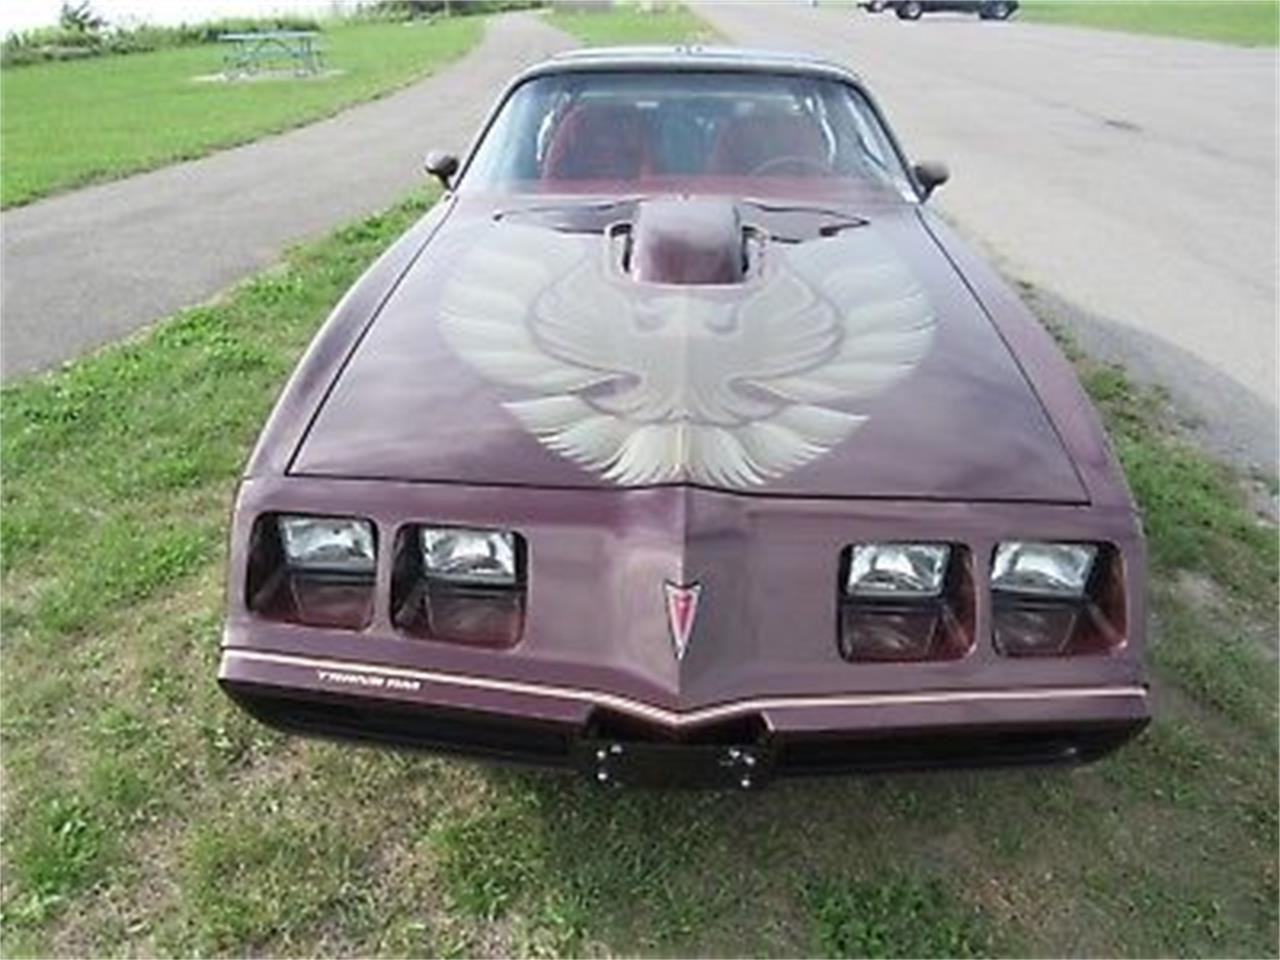 Large Picture of 1980 Firebird Trans Am - $24,000.00 Offered by a Private Seller - OCWB